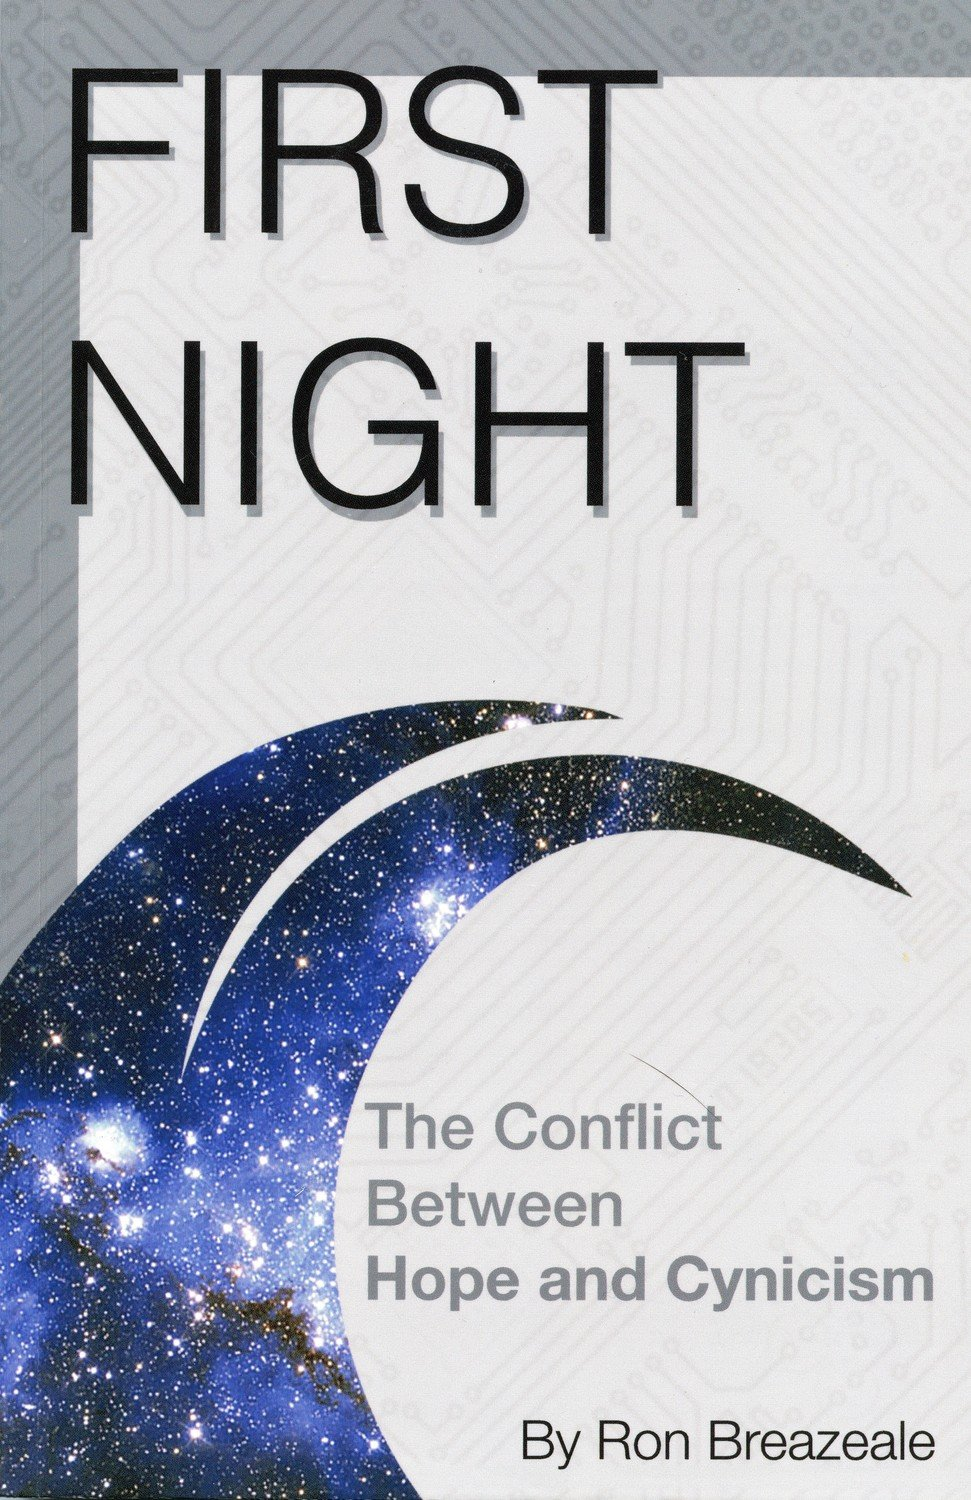 First Night: The Conflict Between Hope and Cynicism by Ron Breazeale, PhD.